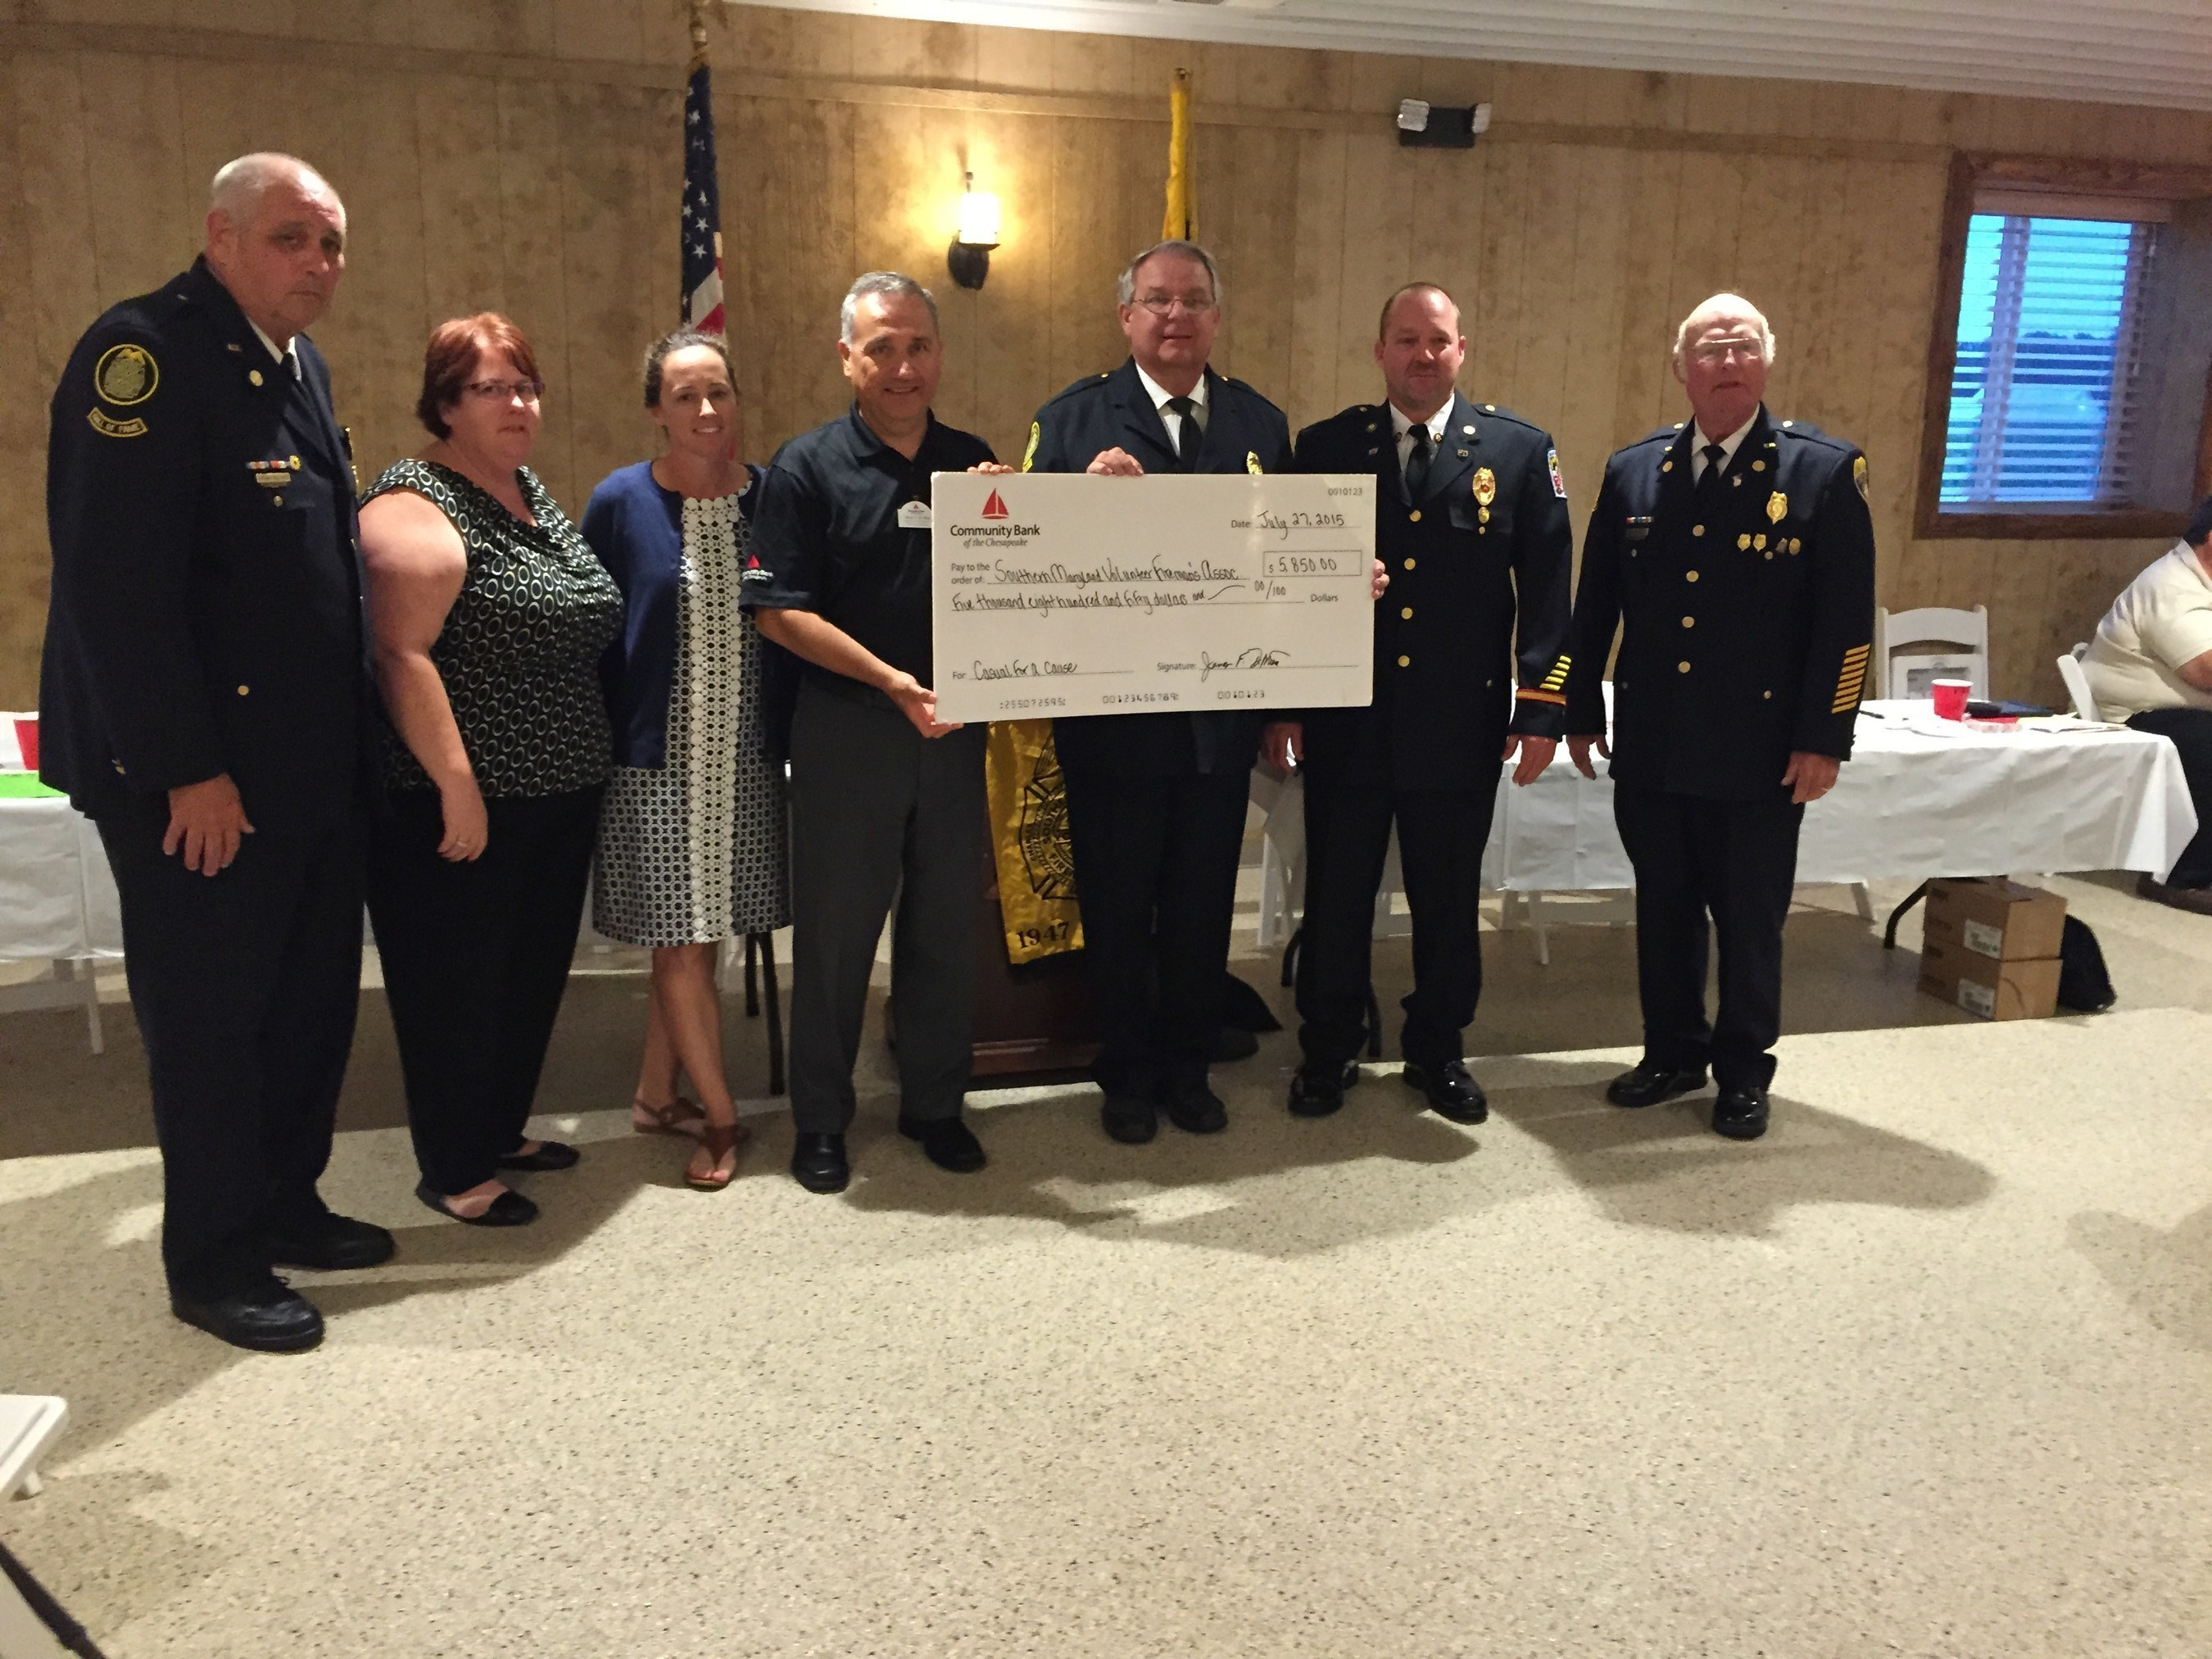 Representatives from Community Bank of the Chesapeake present the donation check to the Southern Maryland Volunteer Firemen's Association.